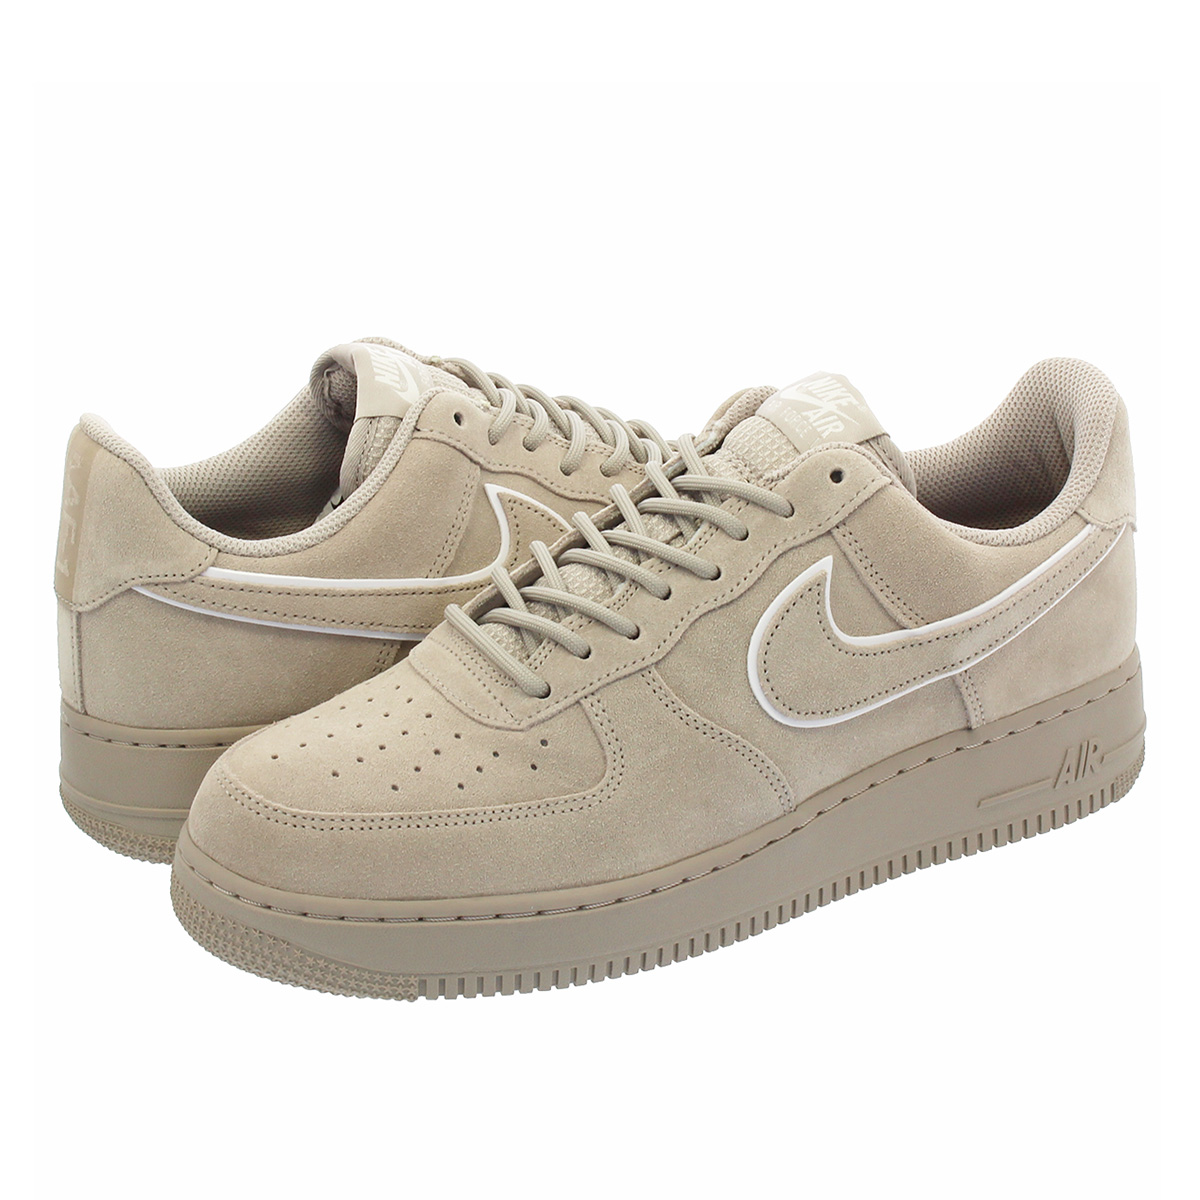 0f80b5051d32f SELECT SHOP LOWTEX: NIKE AIR FORCE 1 '07 LV8 SUEDE Nike air force 1 ...